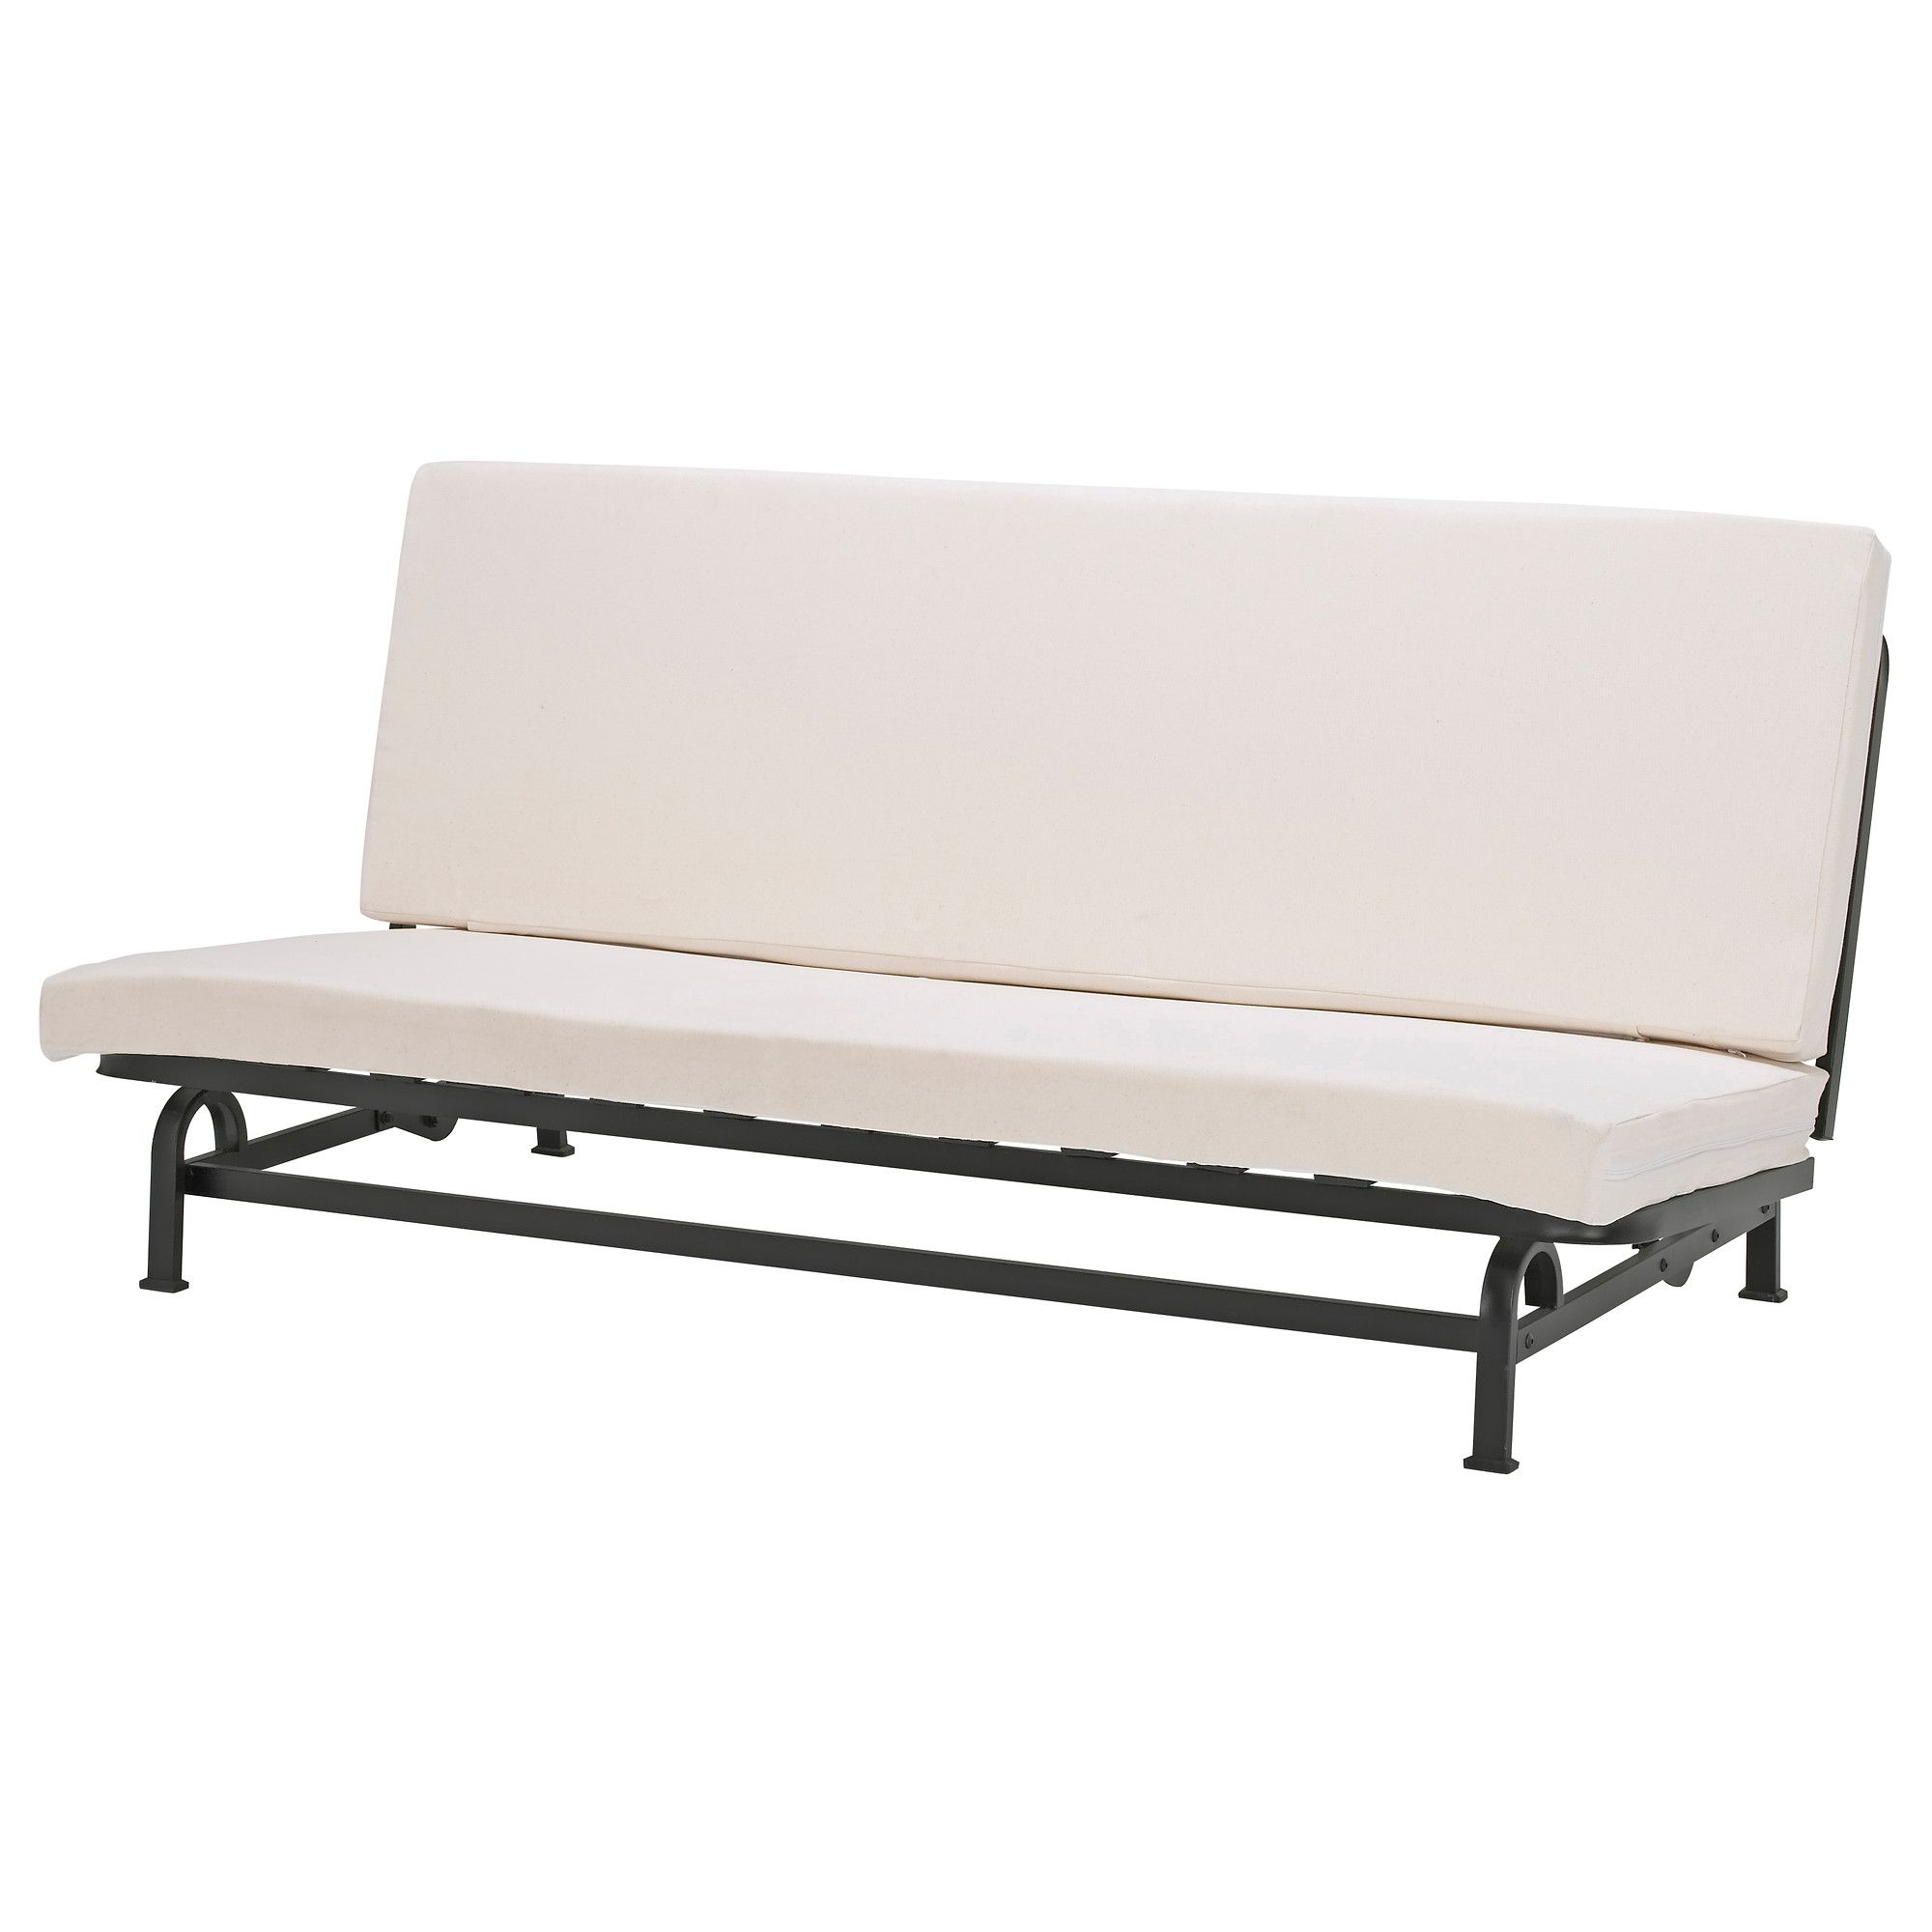 - King Sofa: Ikea Sofa Mattress